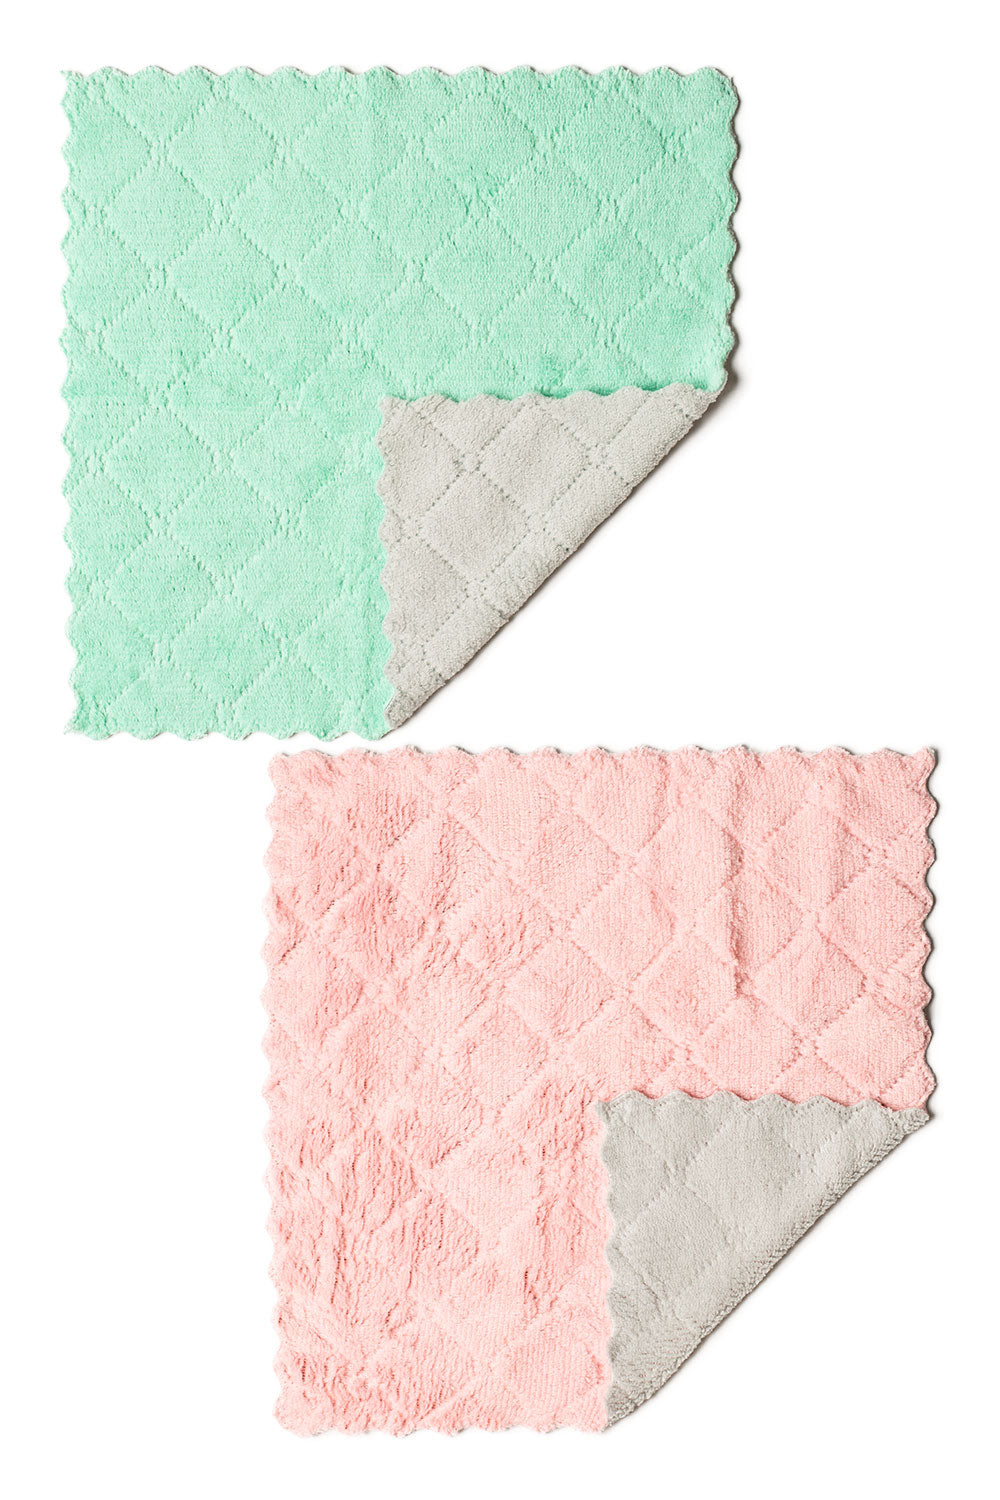 Microfiber Cleansing Cloths - 2 pack